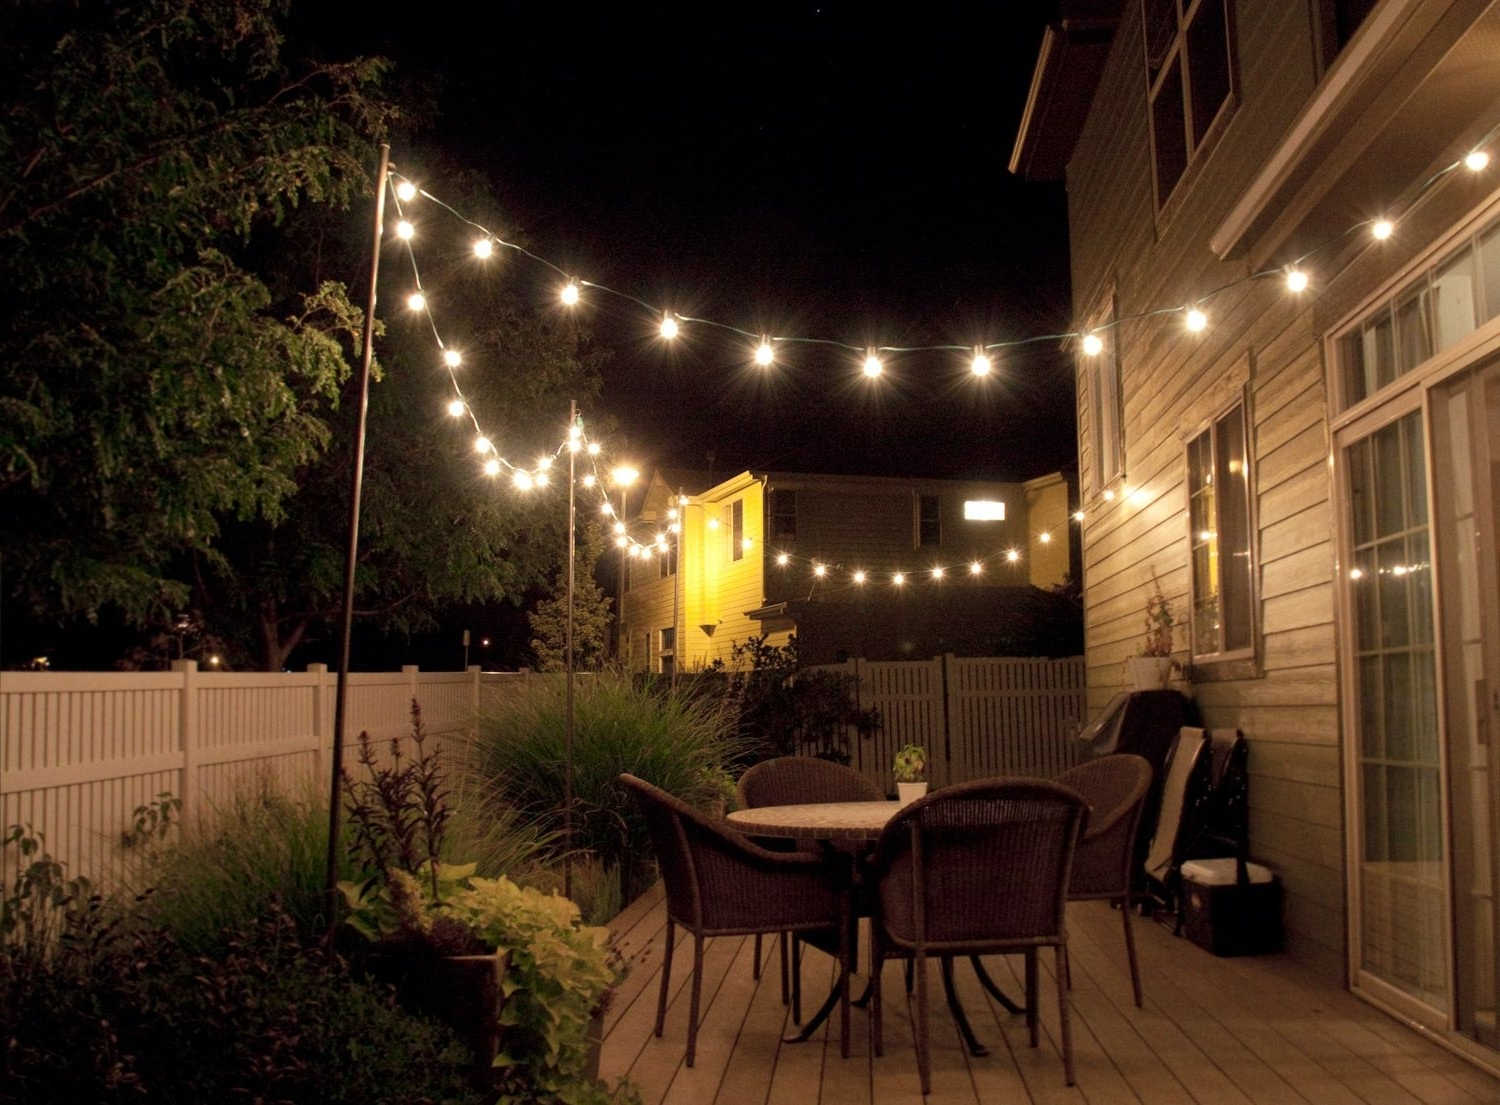 Fashionable Outdoor Lawn Lanterns Throughout How To Make Inexpensive Poles To Hang String Lights On – Café Style (View 2 of 20)